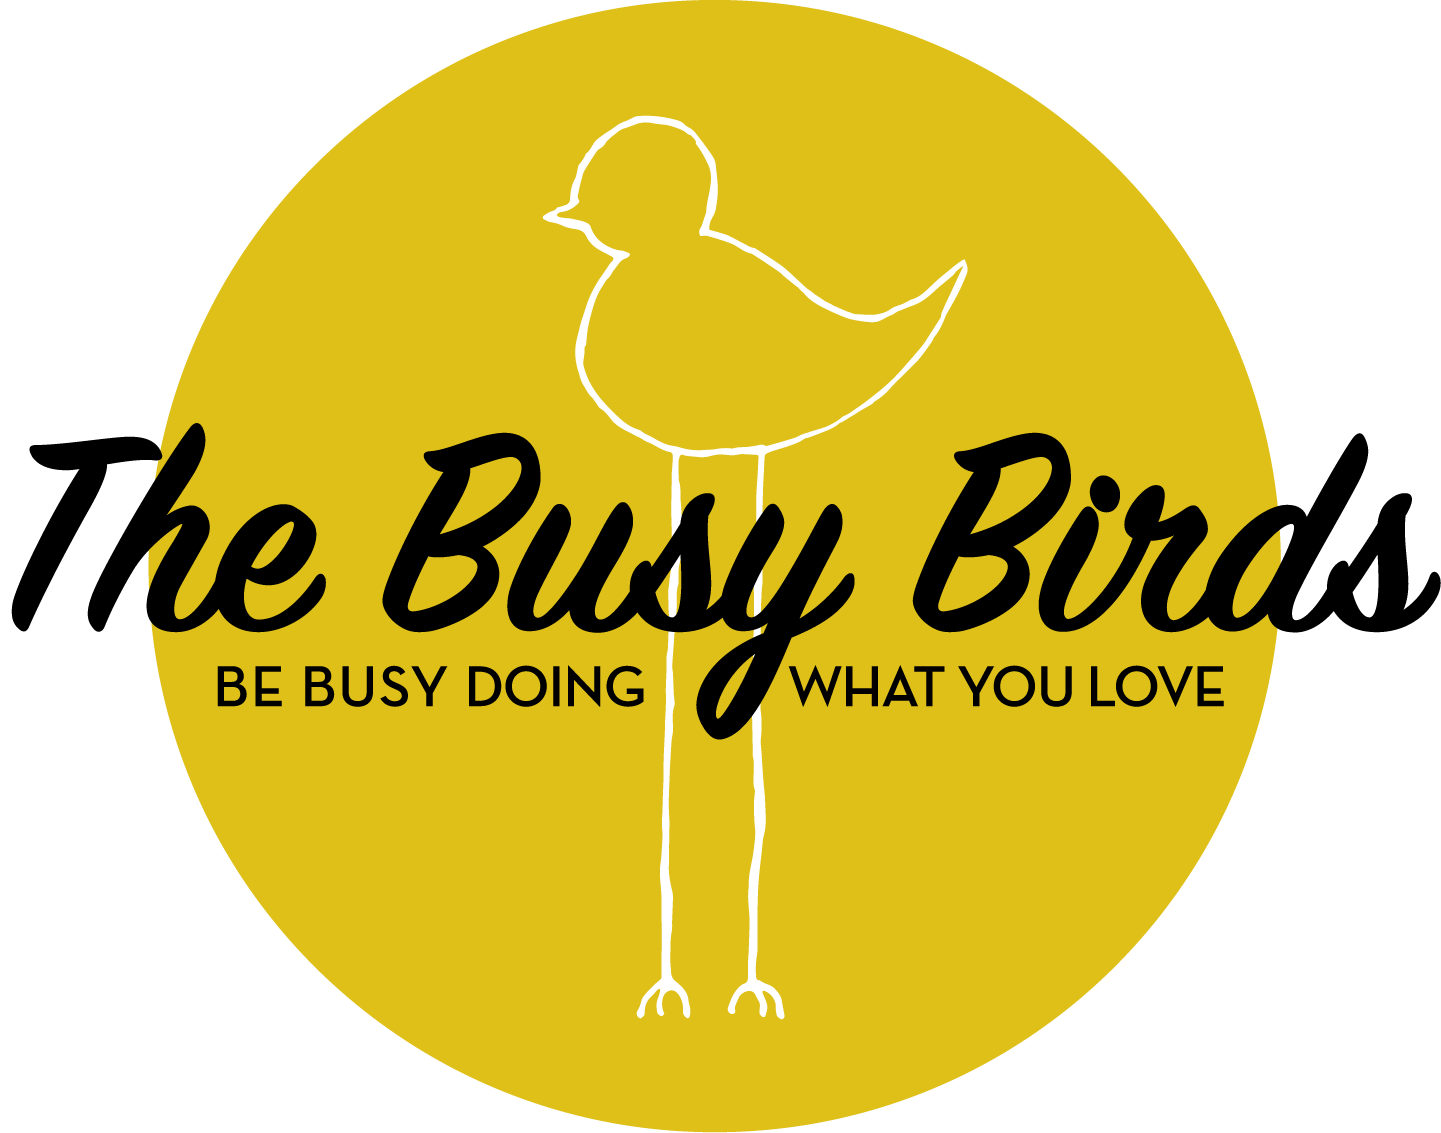 The Busy Birds